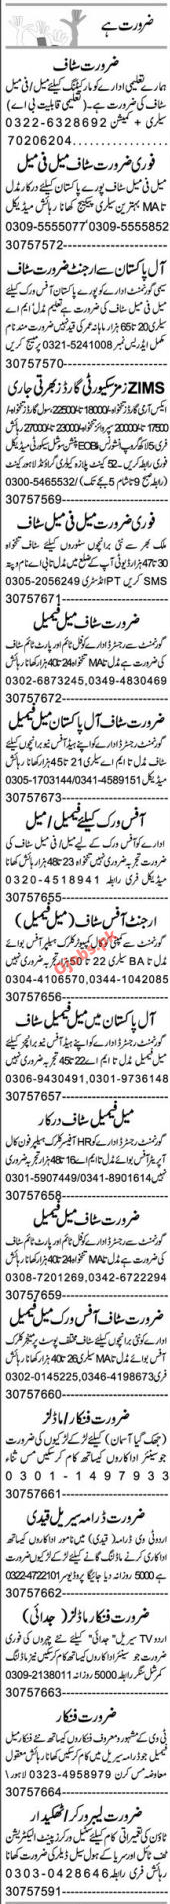 Daily Express Newspaper Classified Jobs in Faisalabad 2021